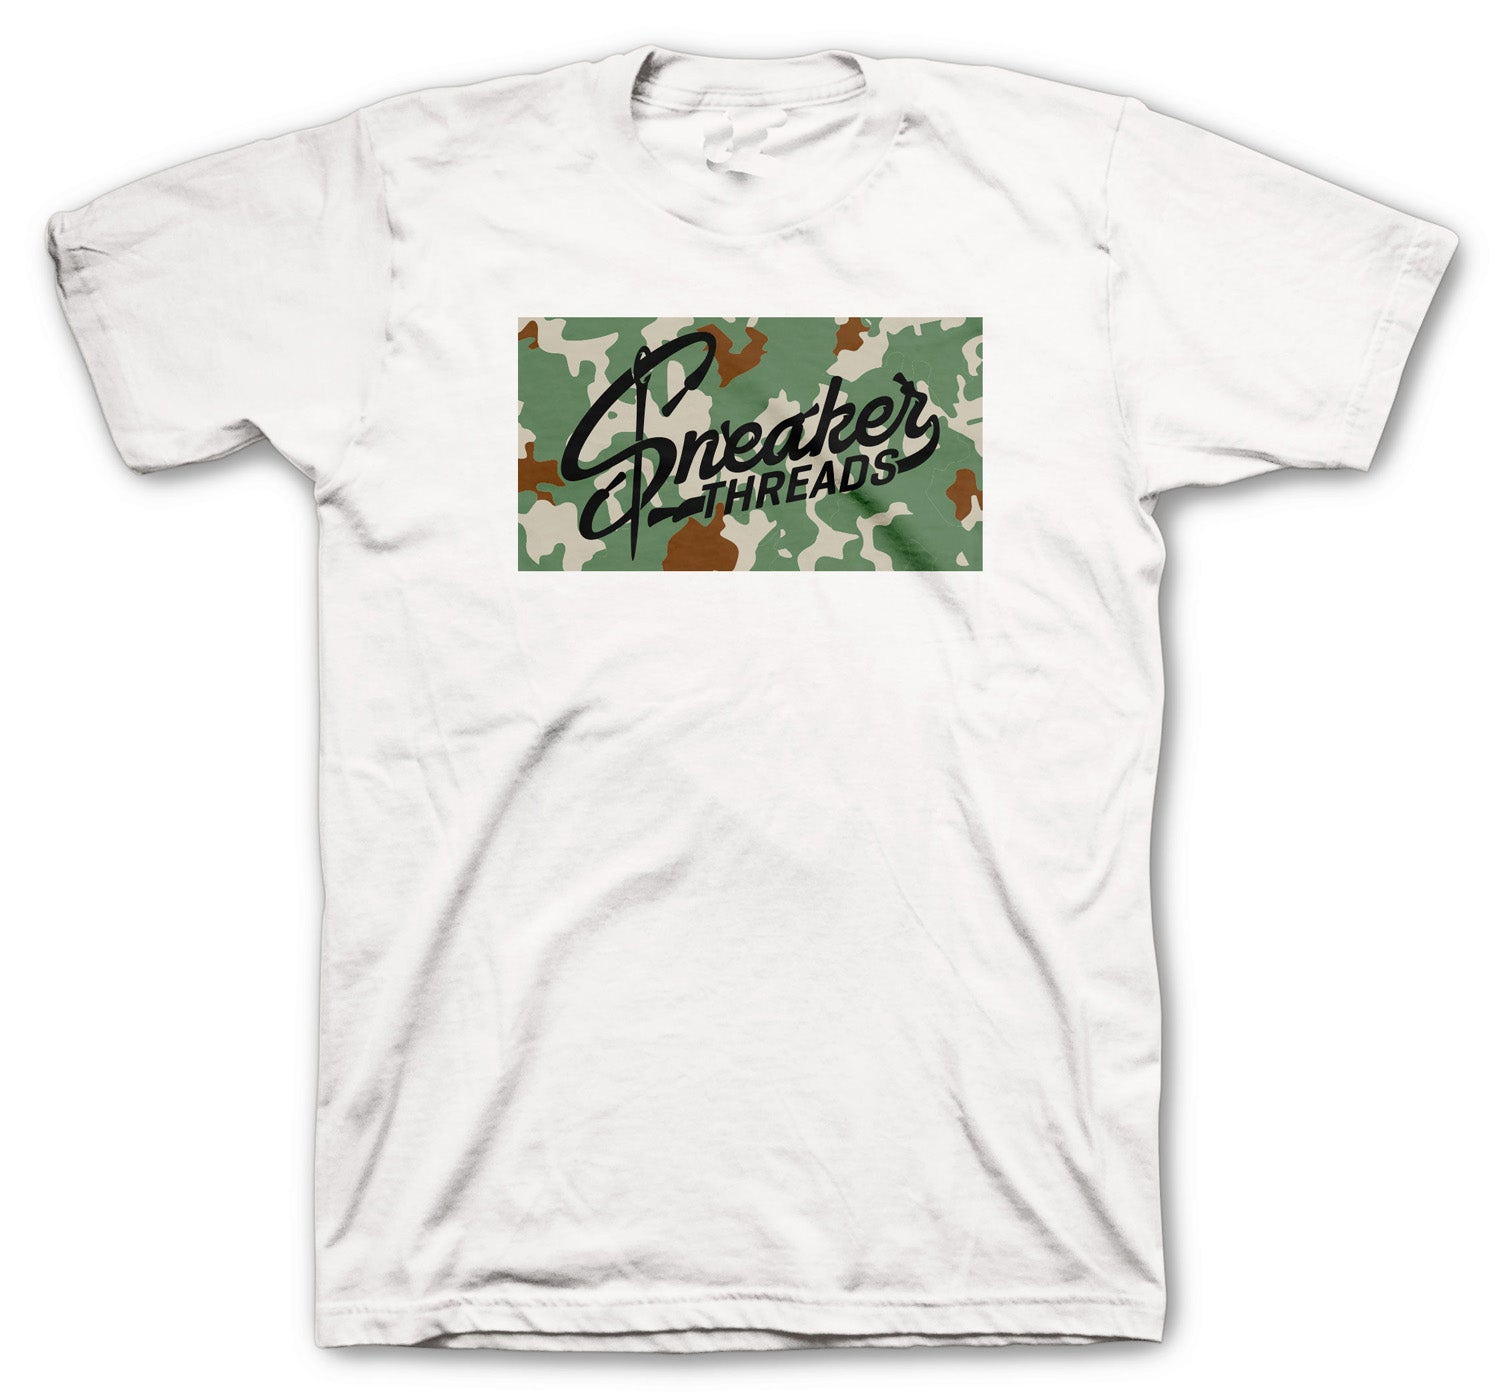 shirt collection made to match perfectly with the Jordan 10 desert camo sneaker collection